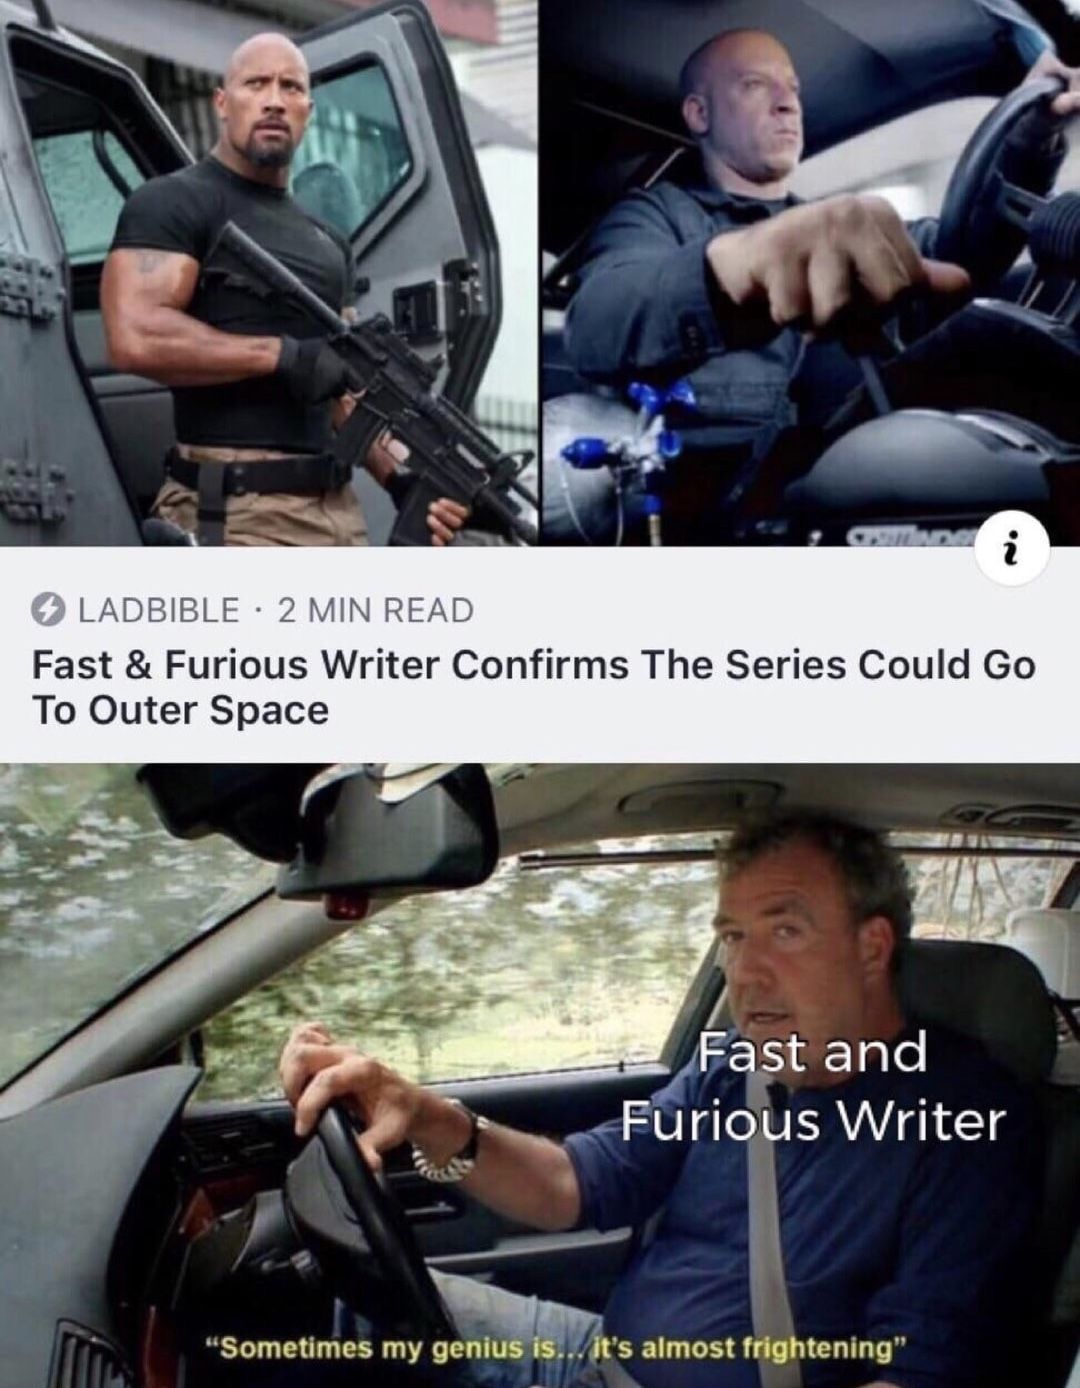 Pin By Gemknight On Funny Fast And Furious Funny Pictures Funny Facts